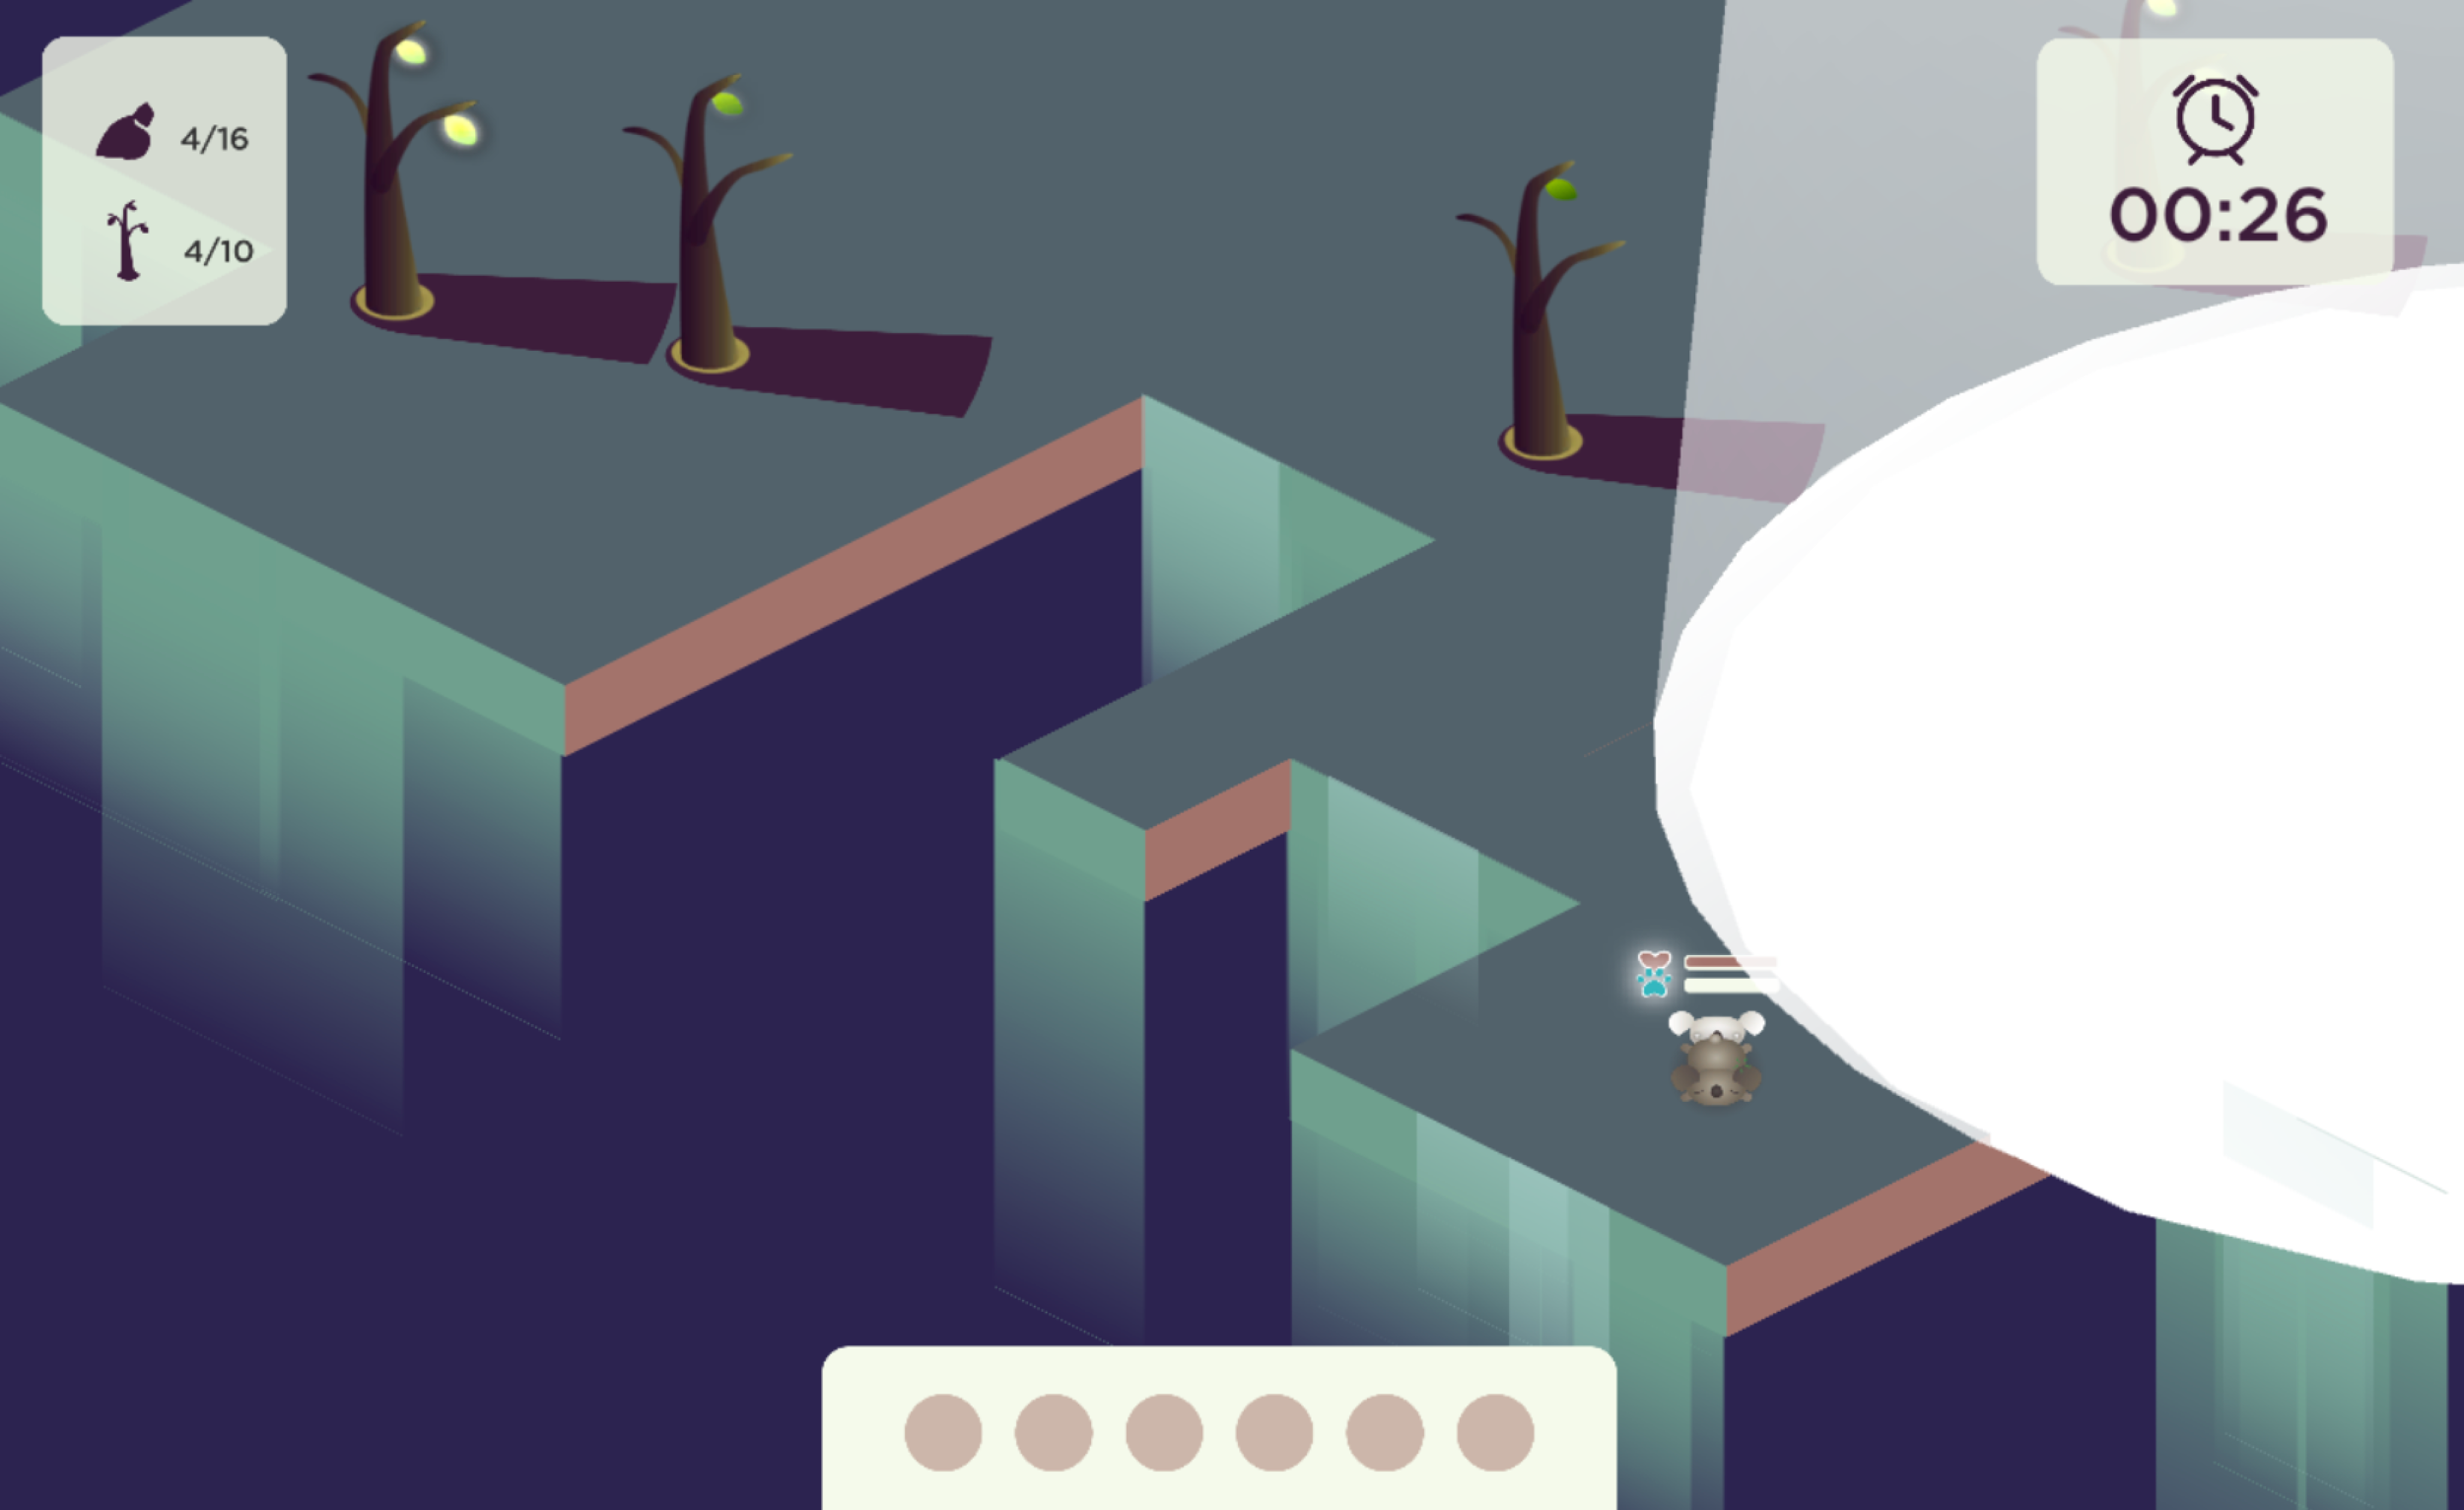 The game at night; the player controls the ghost koala, which has to avoid the evil sun ray until time runs out and it becomes daytime again.